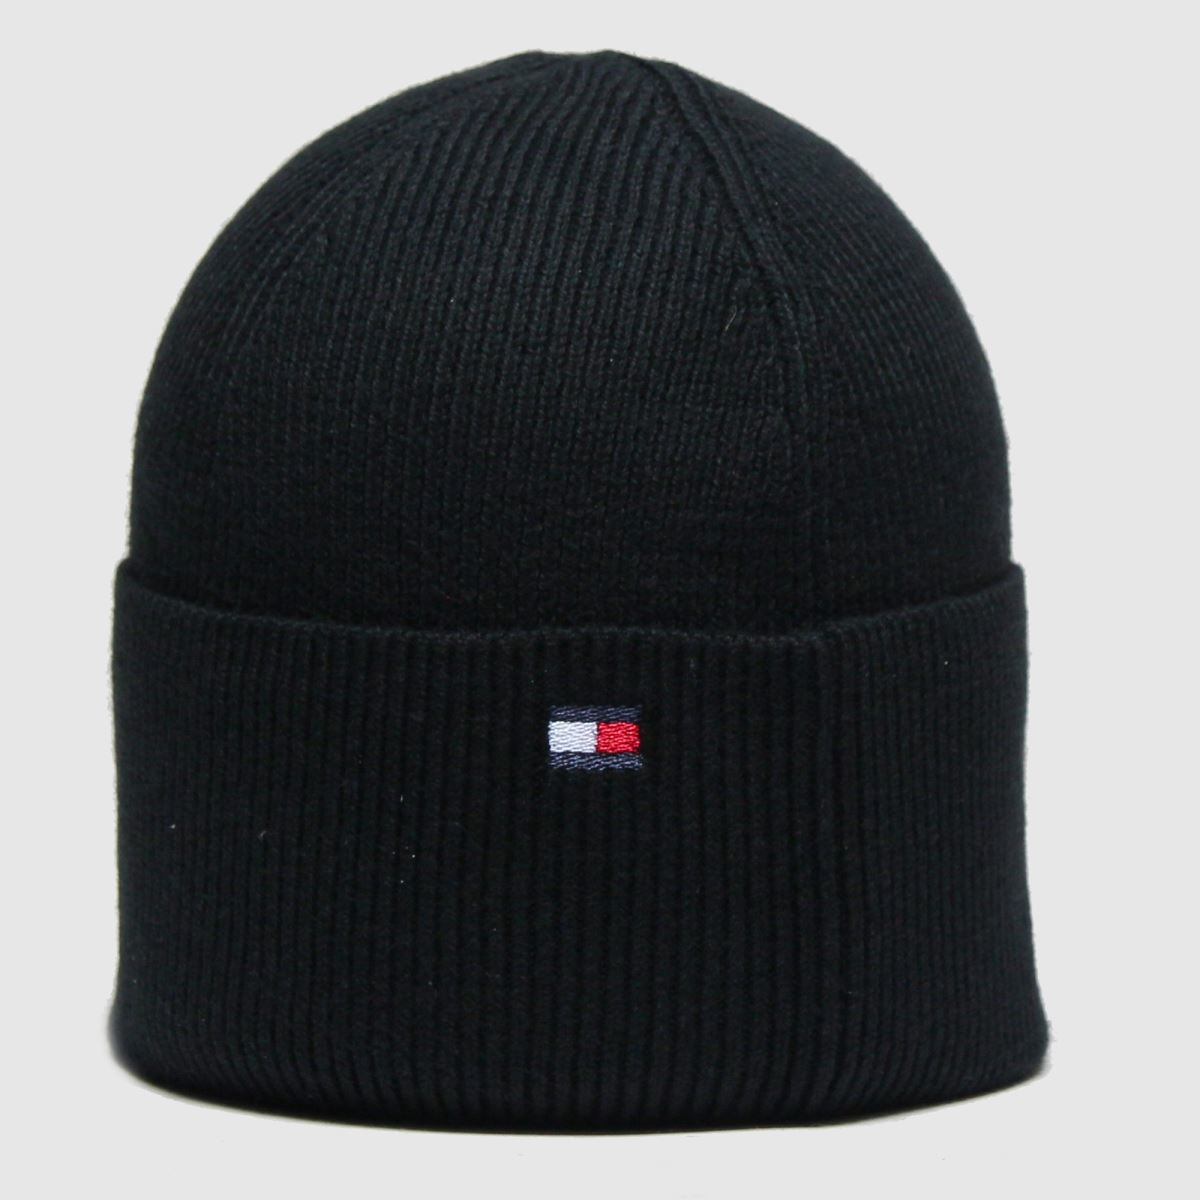 Accessories Tommy Hilfiger Black Esential Knit Beanie